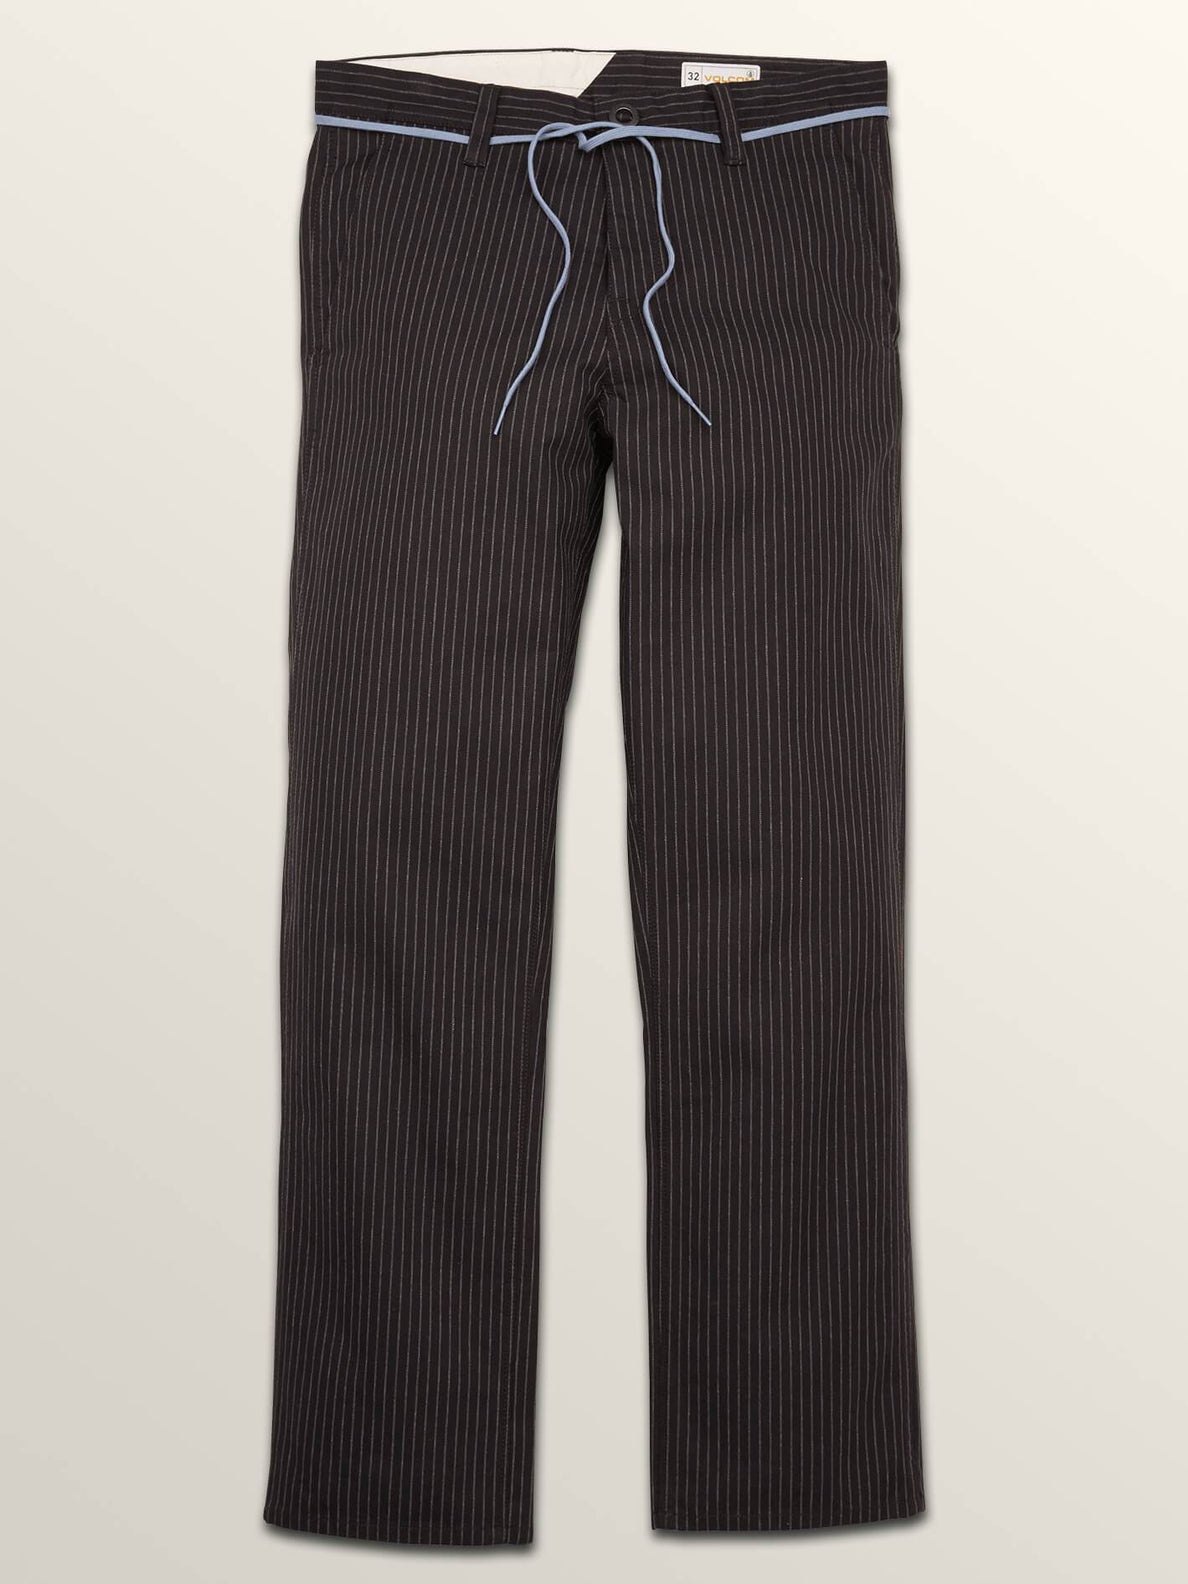 Noa Noise Chino Pants In Black, Fifth Alternate View